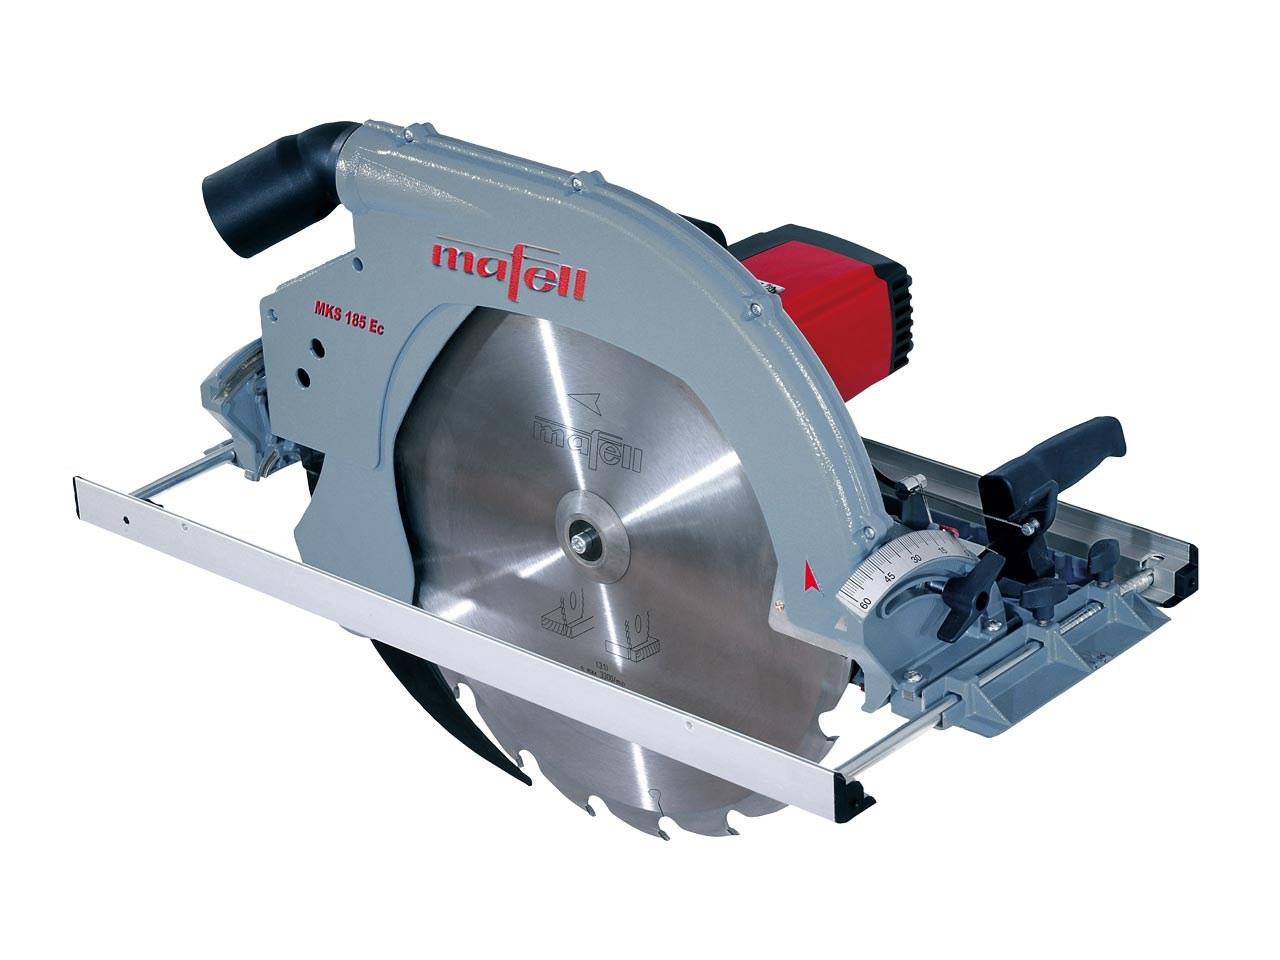 Mafell MKS185Ec 230v 3000w Portable Circular Carpentry Saw